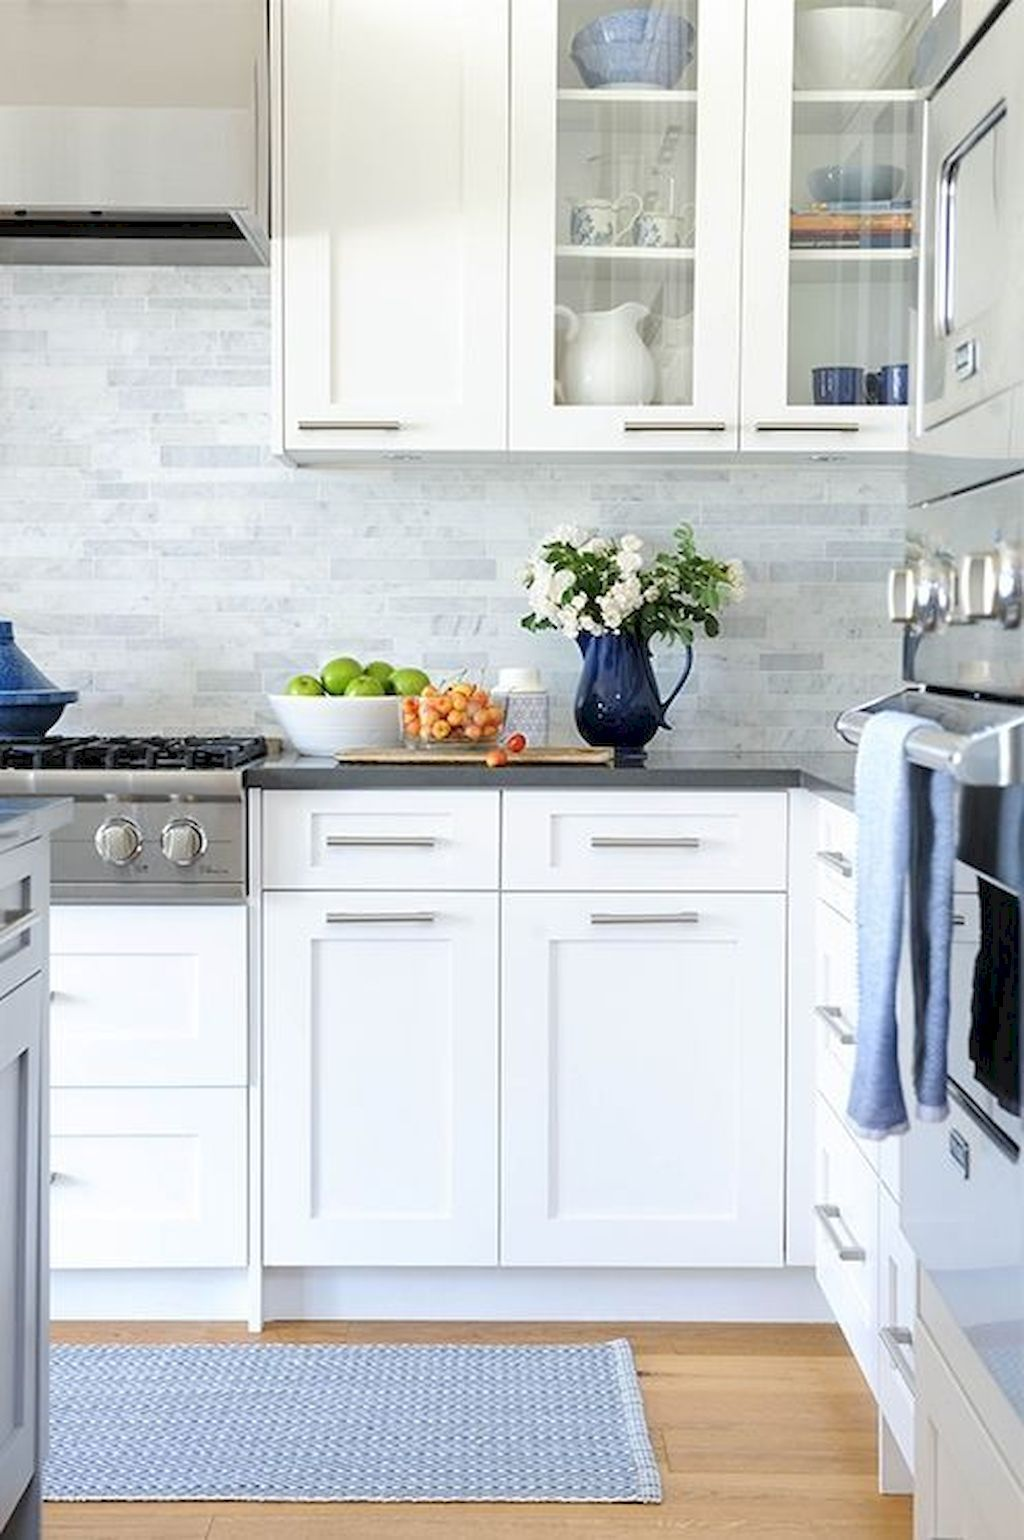 Tired Of The Way Your Kitchen Looks Changing The Color Hardware Or Door Style Of Kitchen Cabinets And Backsplash White Modern Kitchen Kitchen Cabinet Design